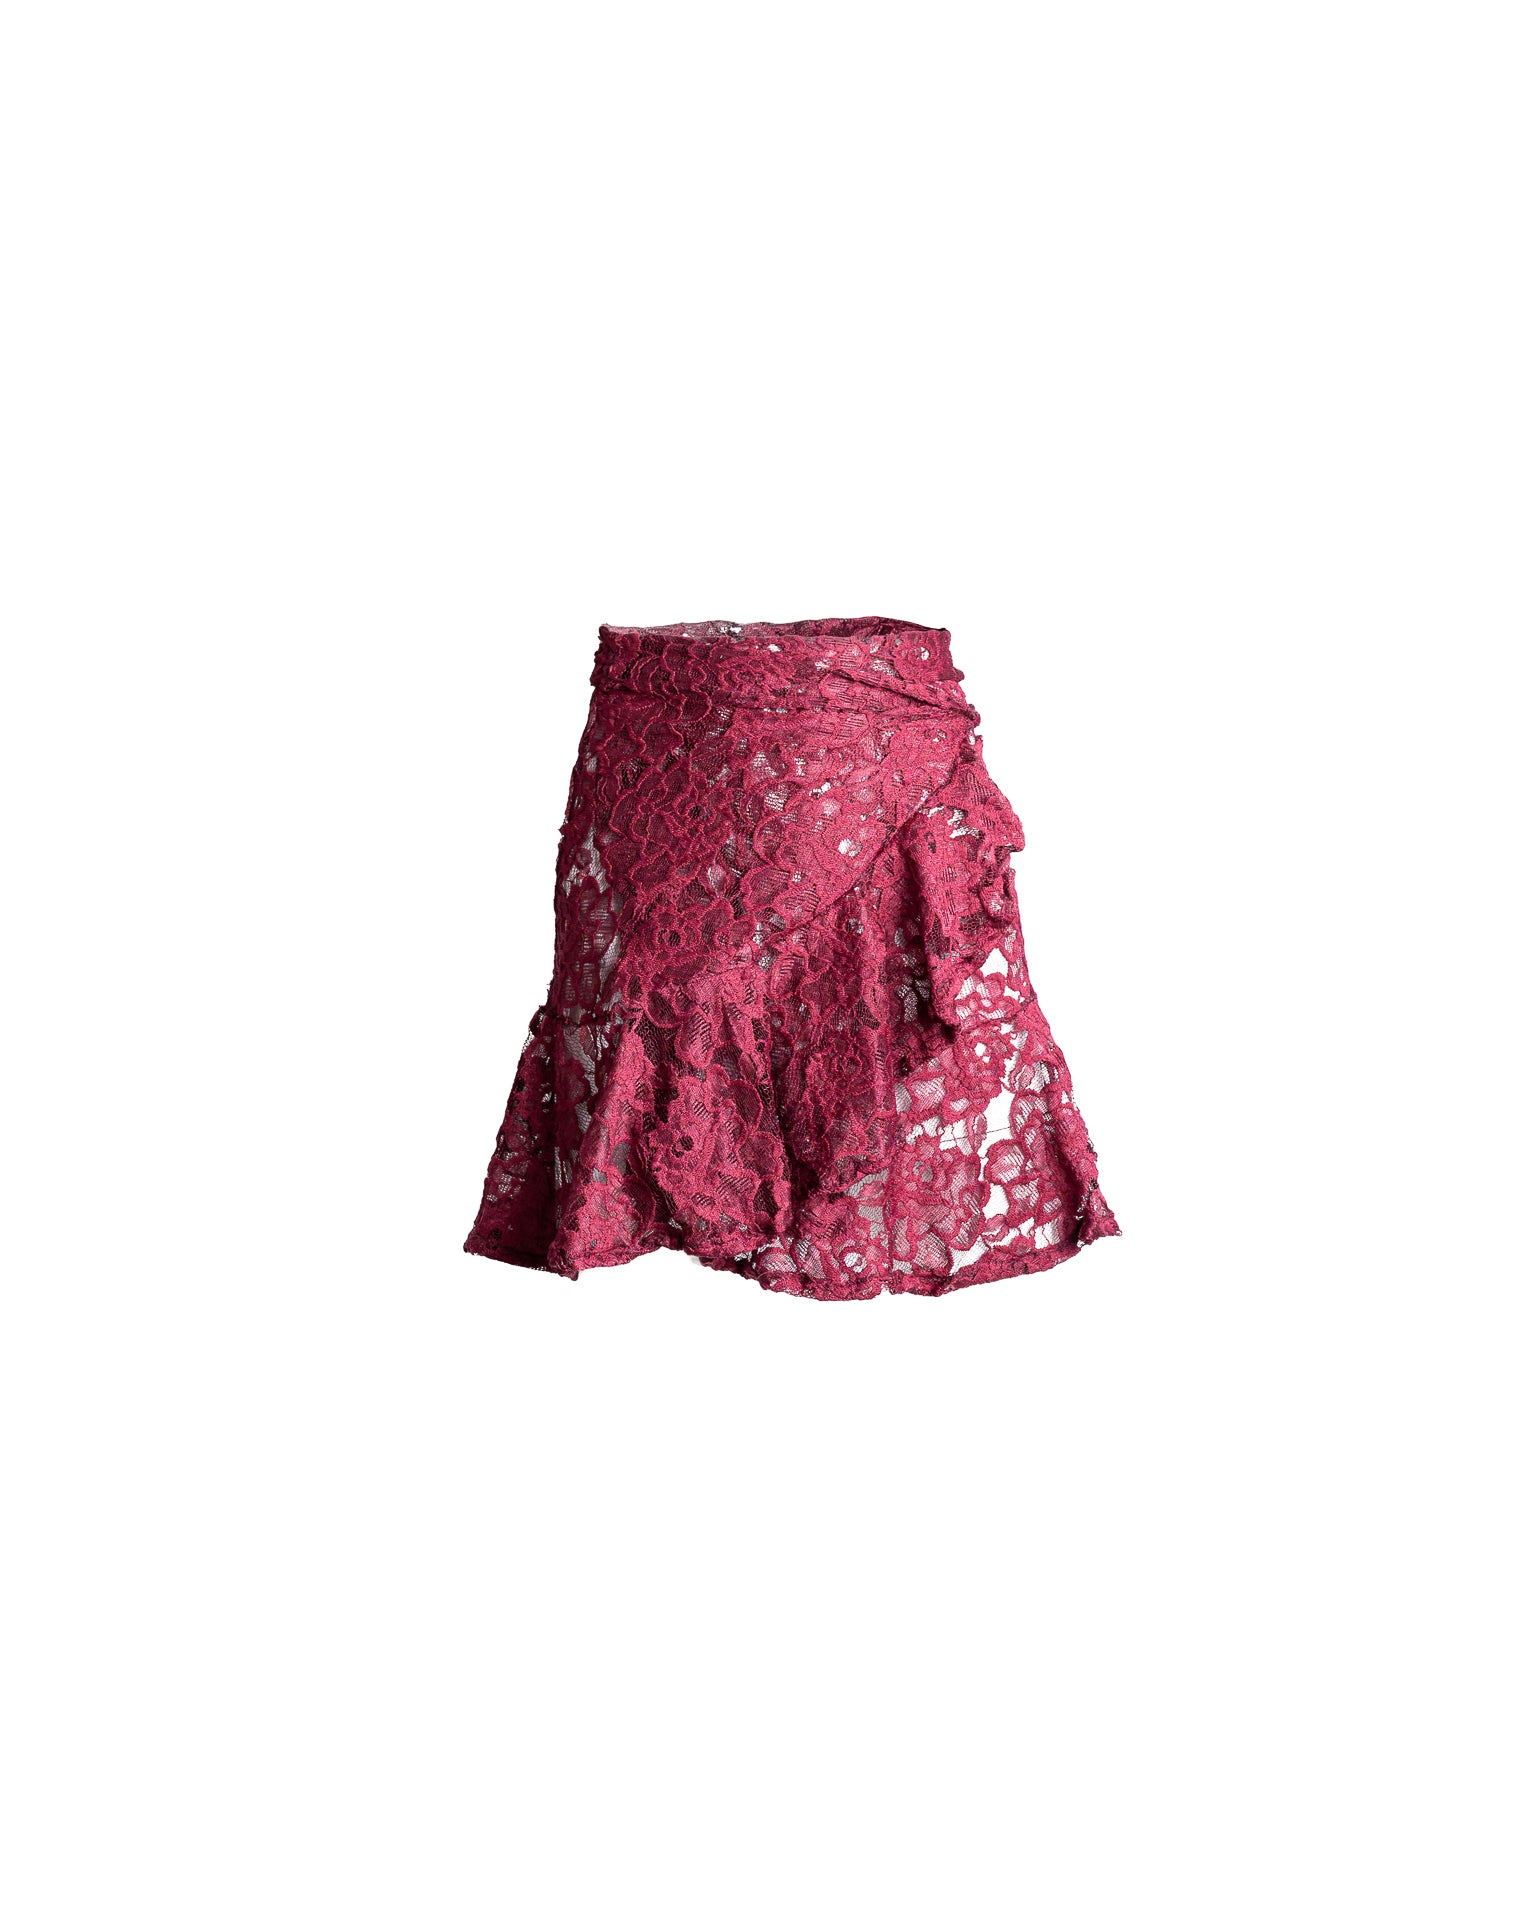 Antigua Skirt Mini Lola Burgundy Lace